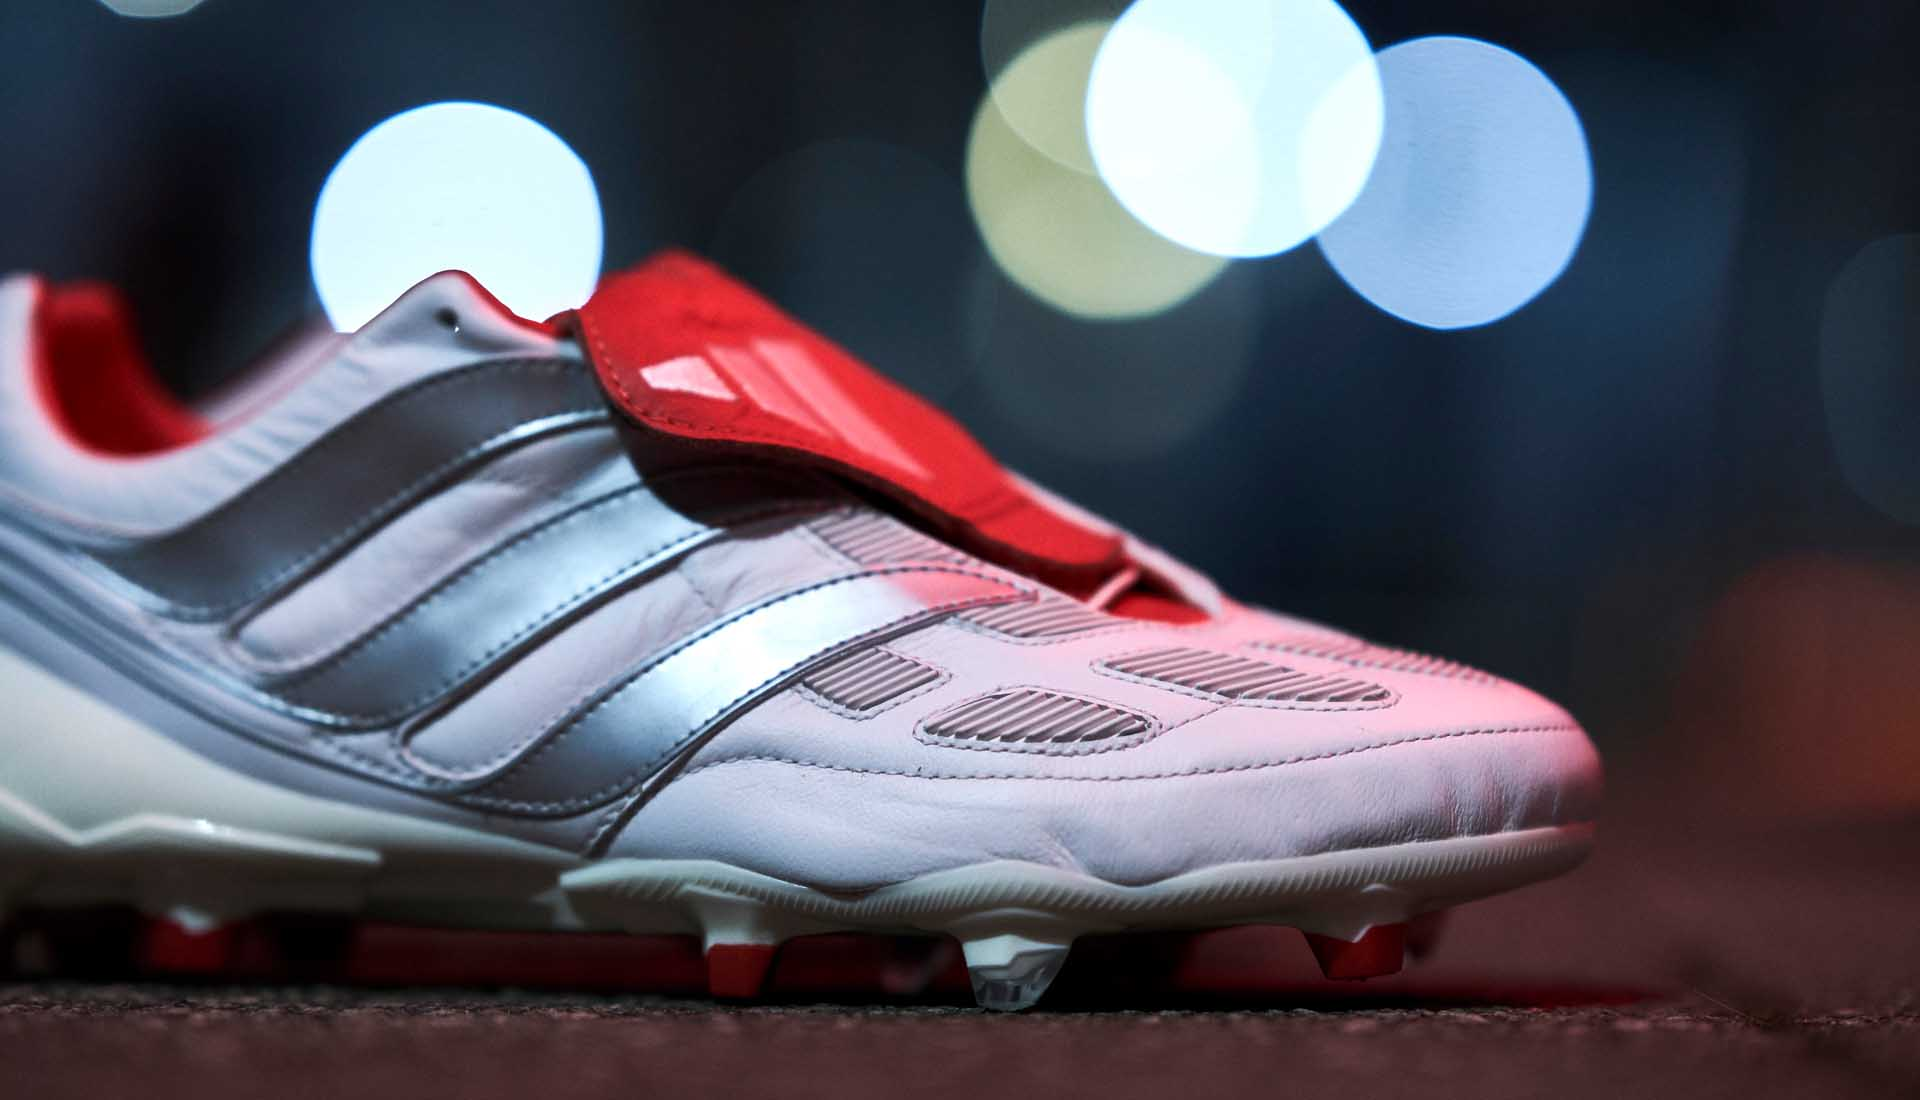 first rate website for discount in stock Closer Look at the adidas '25 Years of Predator' Beckham ...